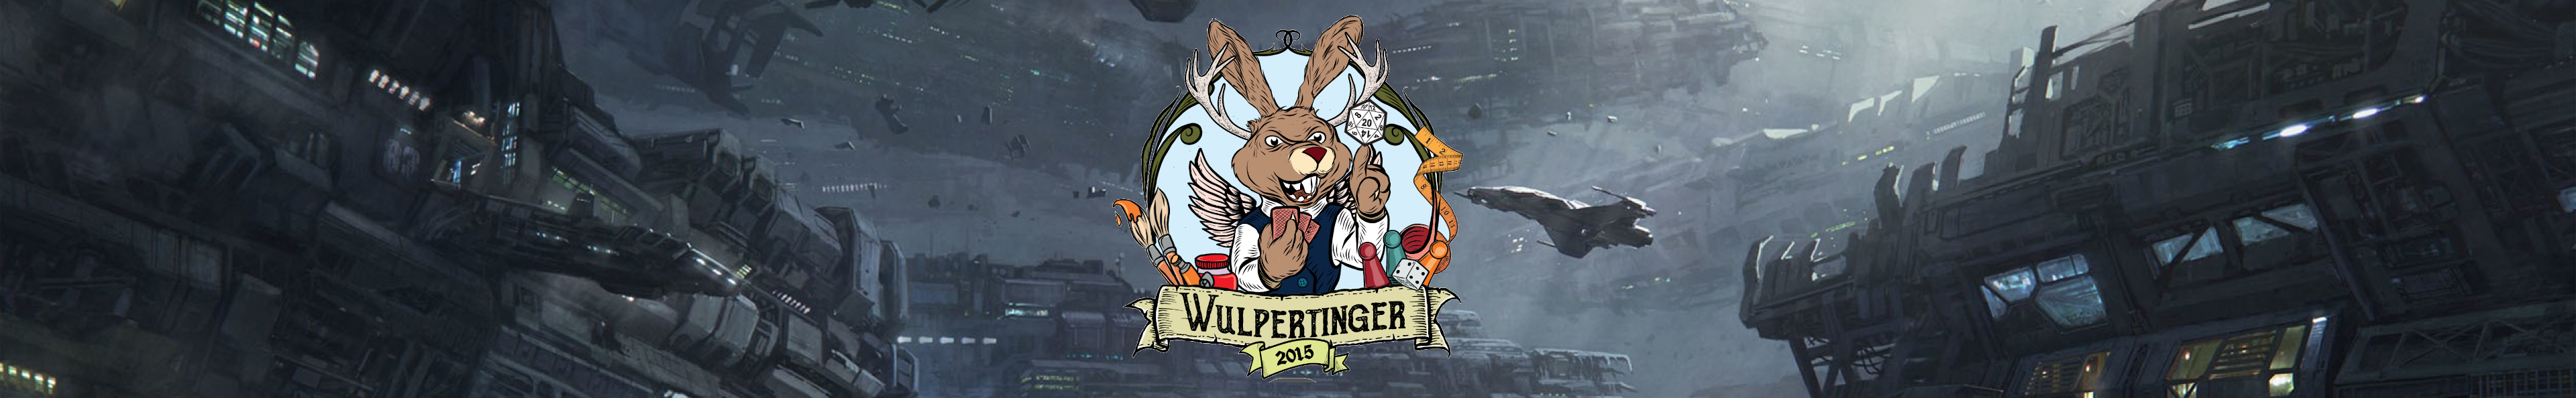 Wulpertinger Forum